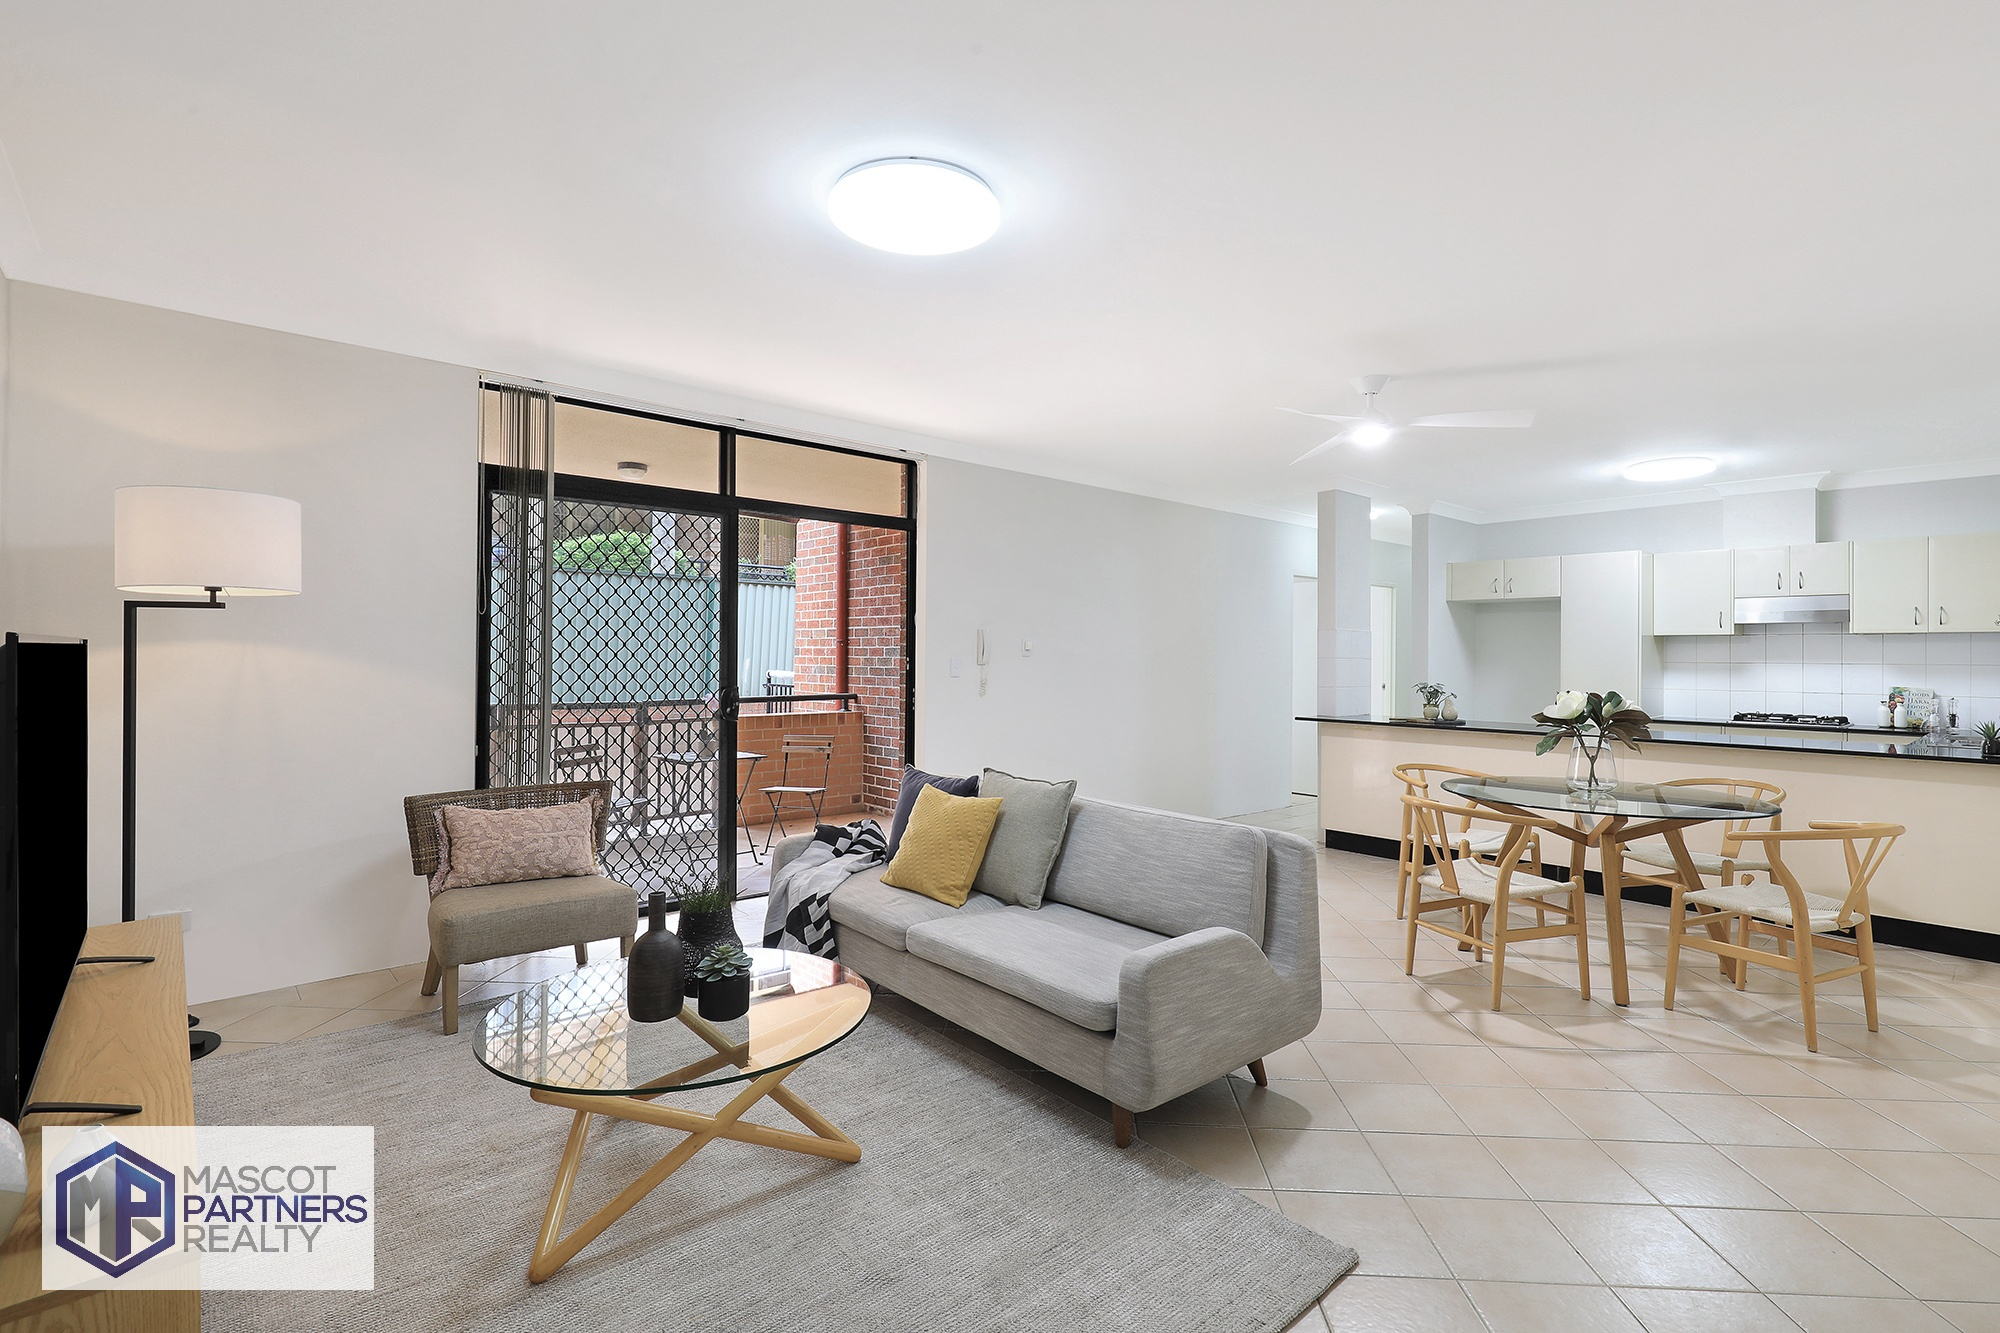 9/2-4 Cairns Street, Riverwood NSW 2210 (LEASED)